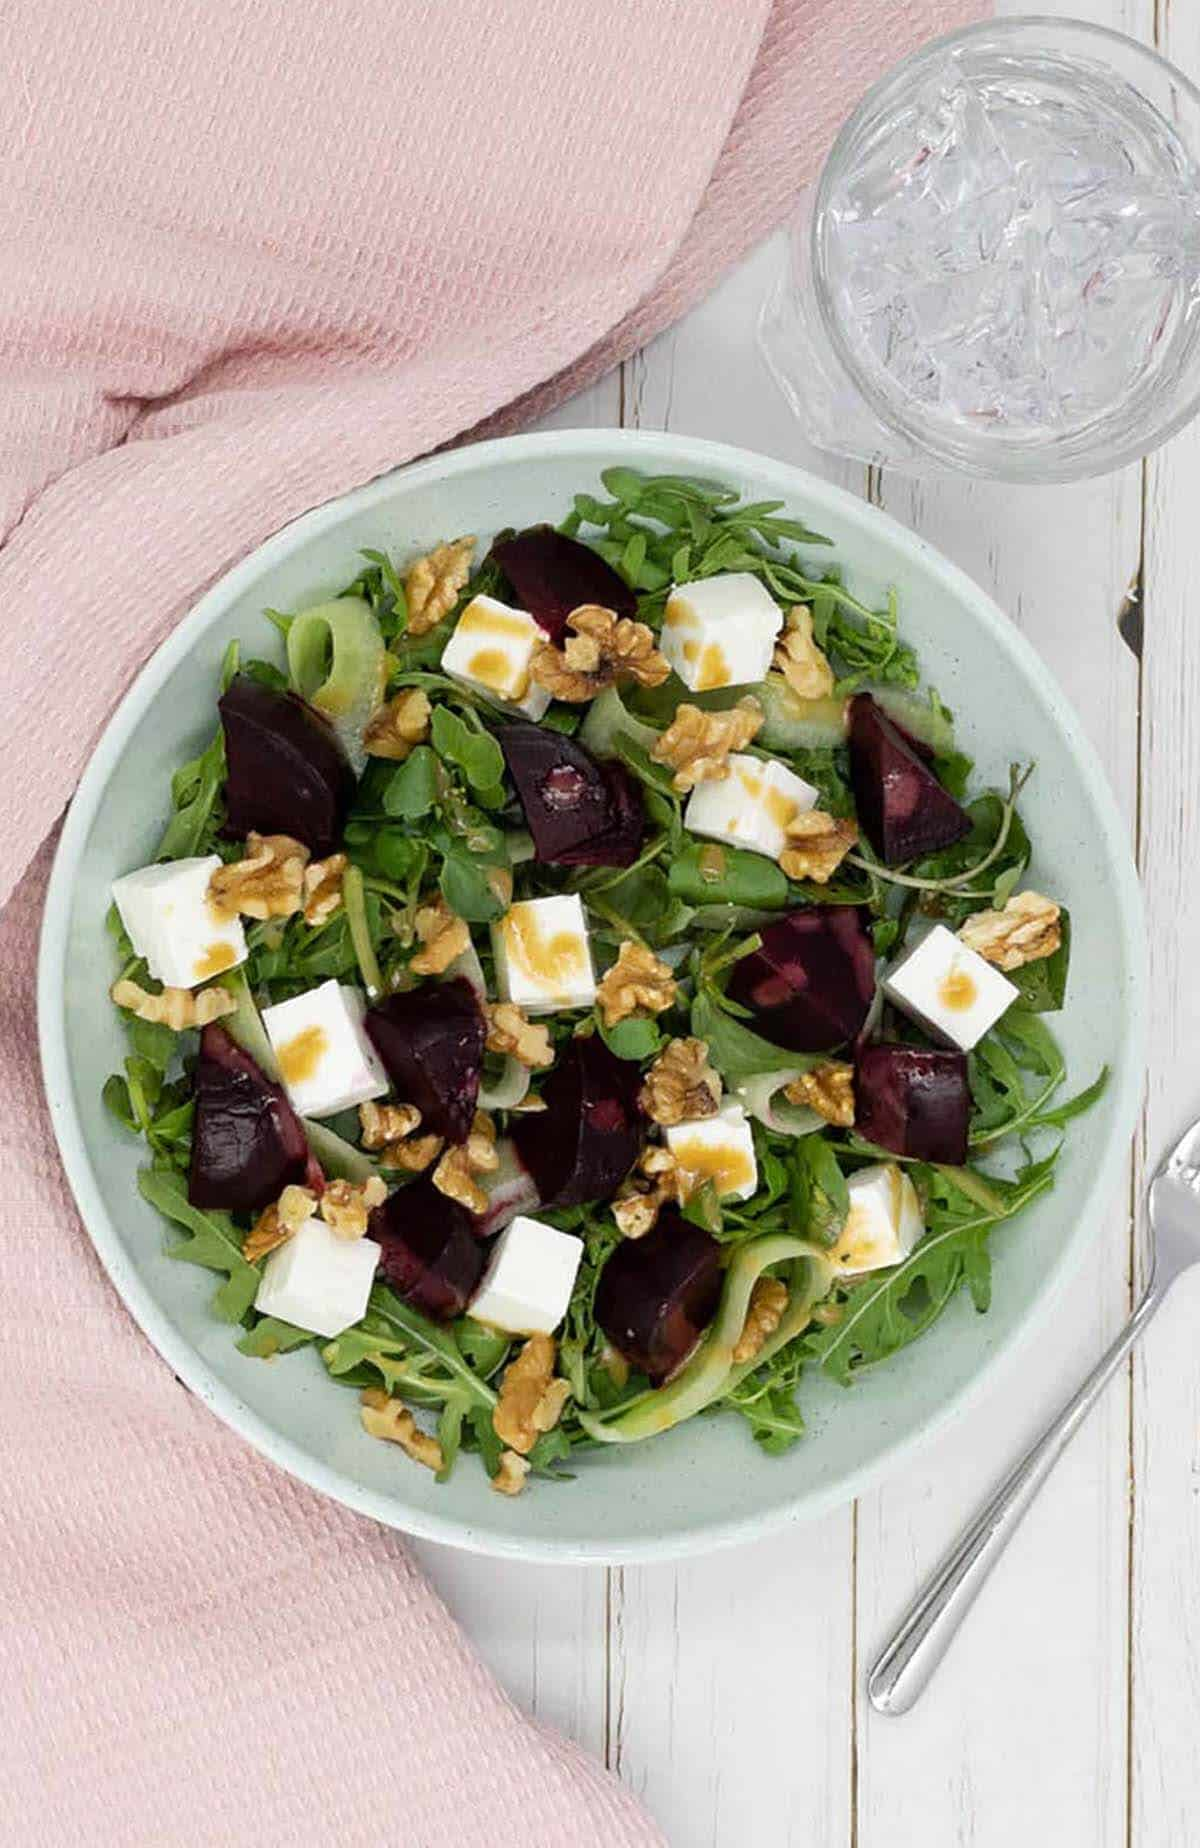 Homemade beetroot salad with feta